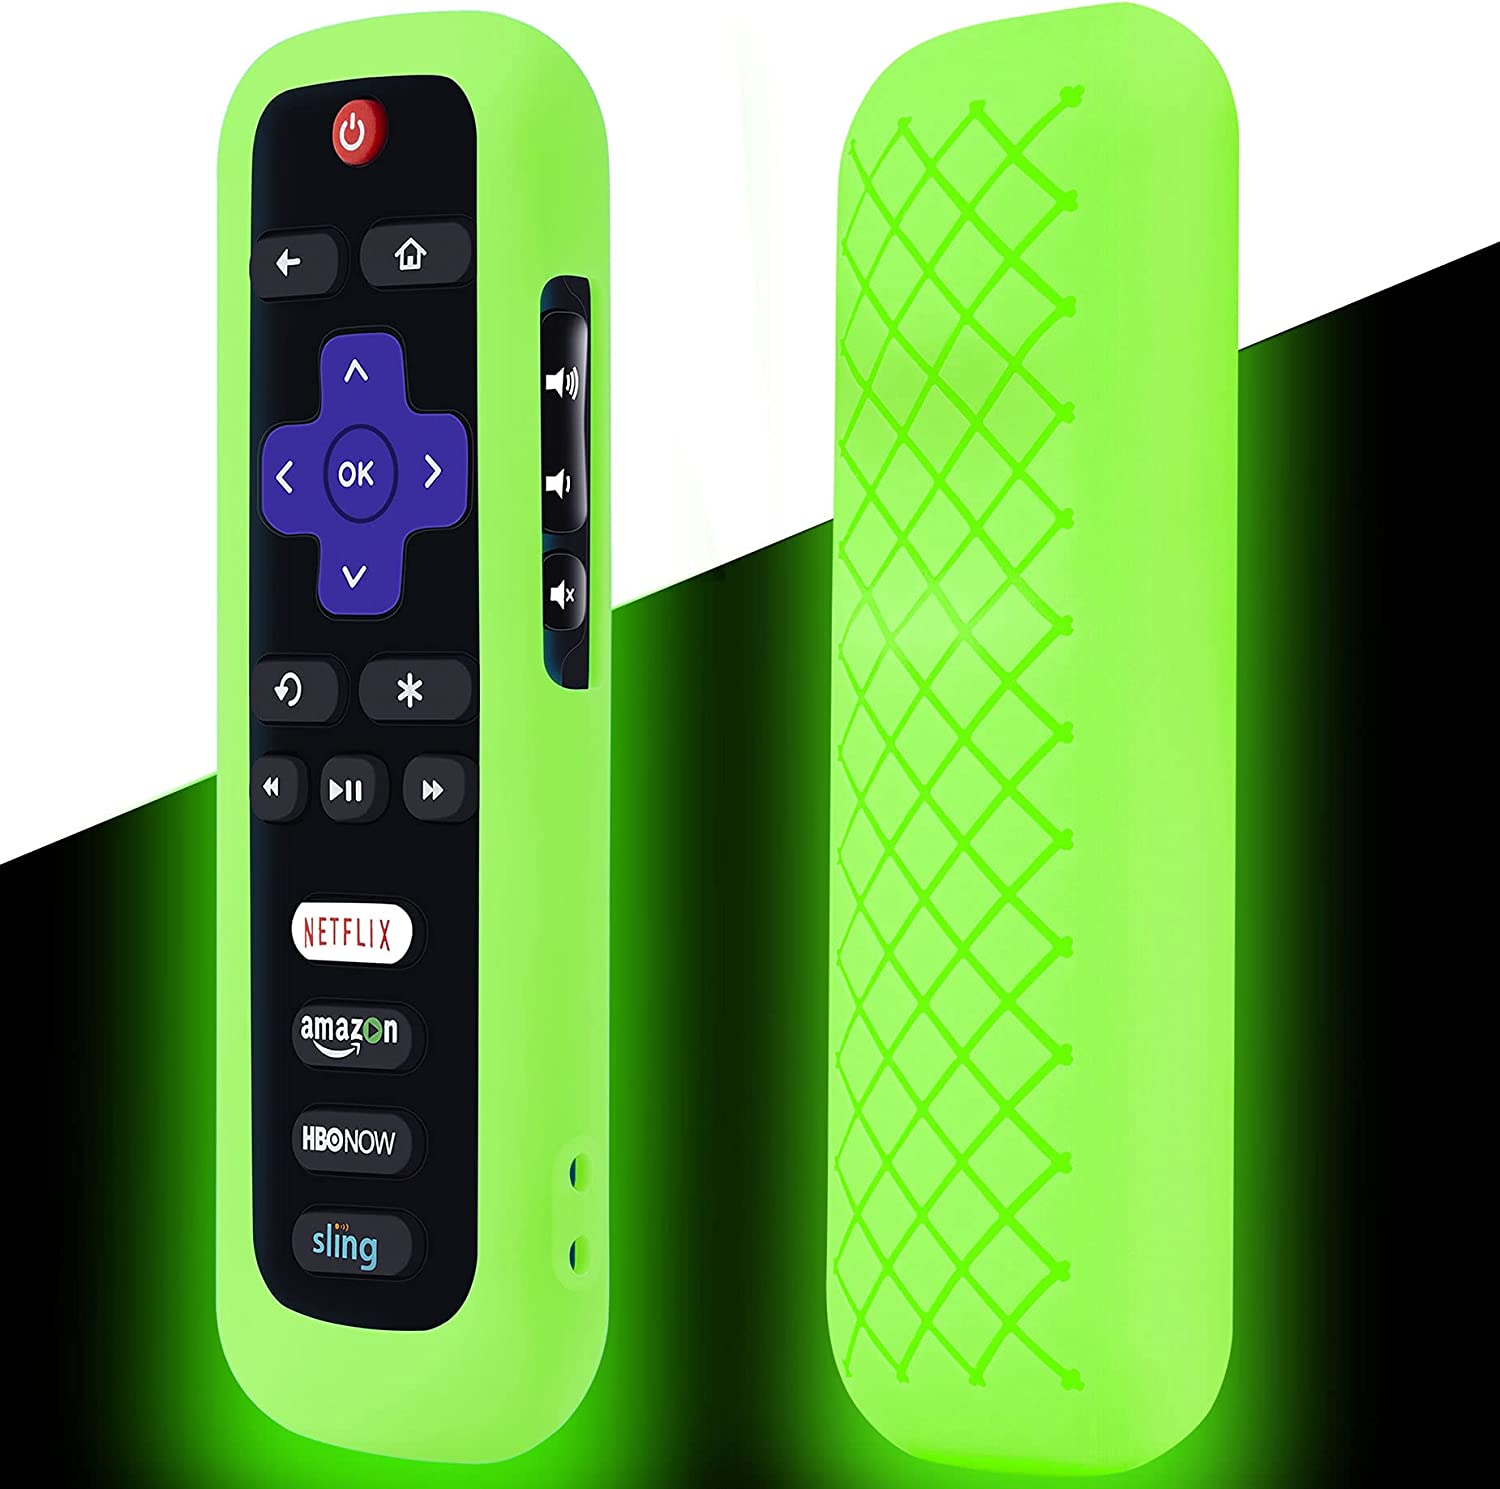 Remote Case for Roku, Battery Cover for TCL Roku Smart TV Steaming Stick Remote, Roku TV Remote Cover Silicone Protective Controller Universal Sleeve Skin Glow in The Dark Green